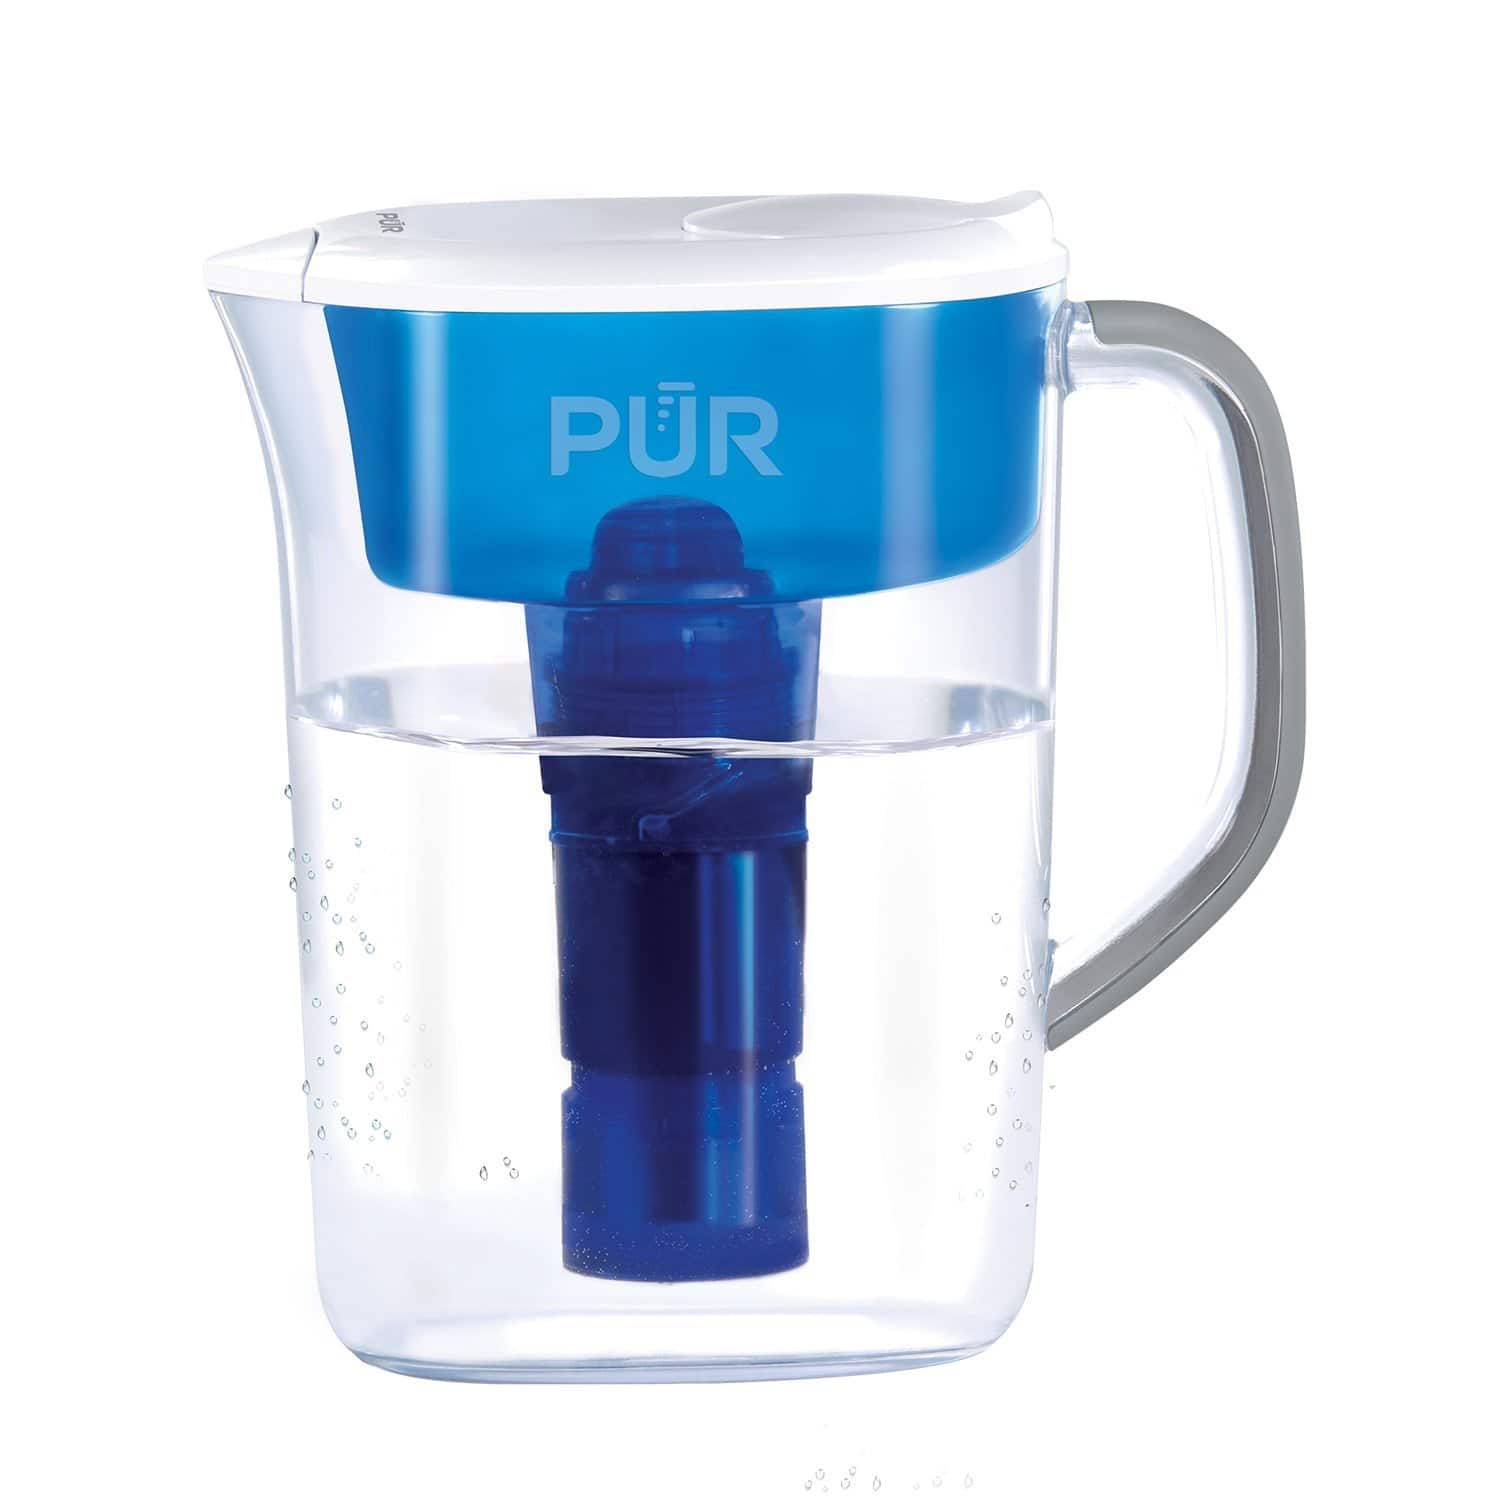 PUR 7 Cup Water Pitcher Amazon $12.74 (49% off) free ship with Prime